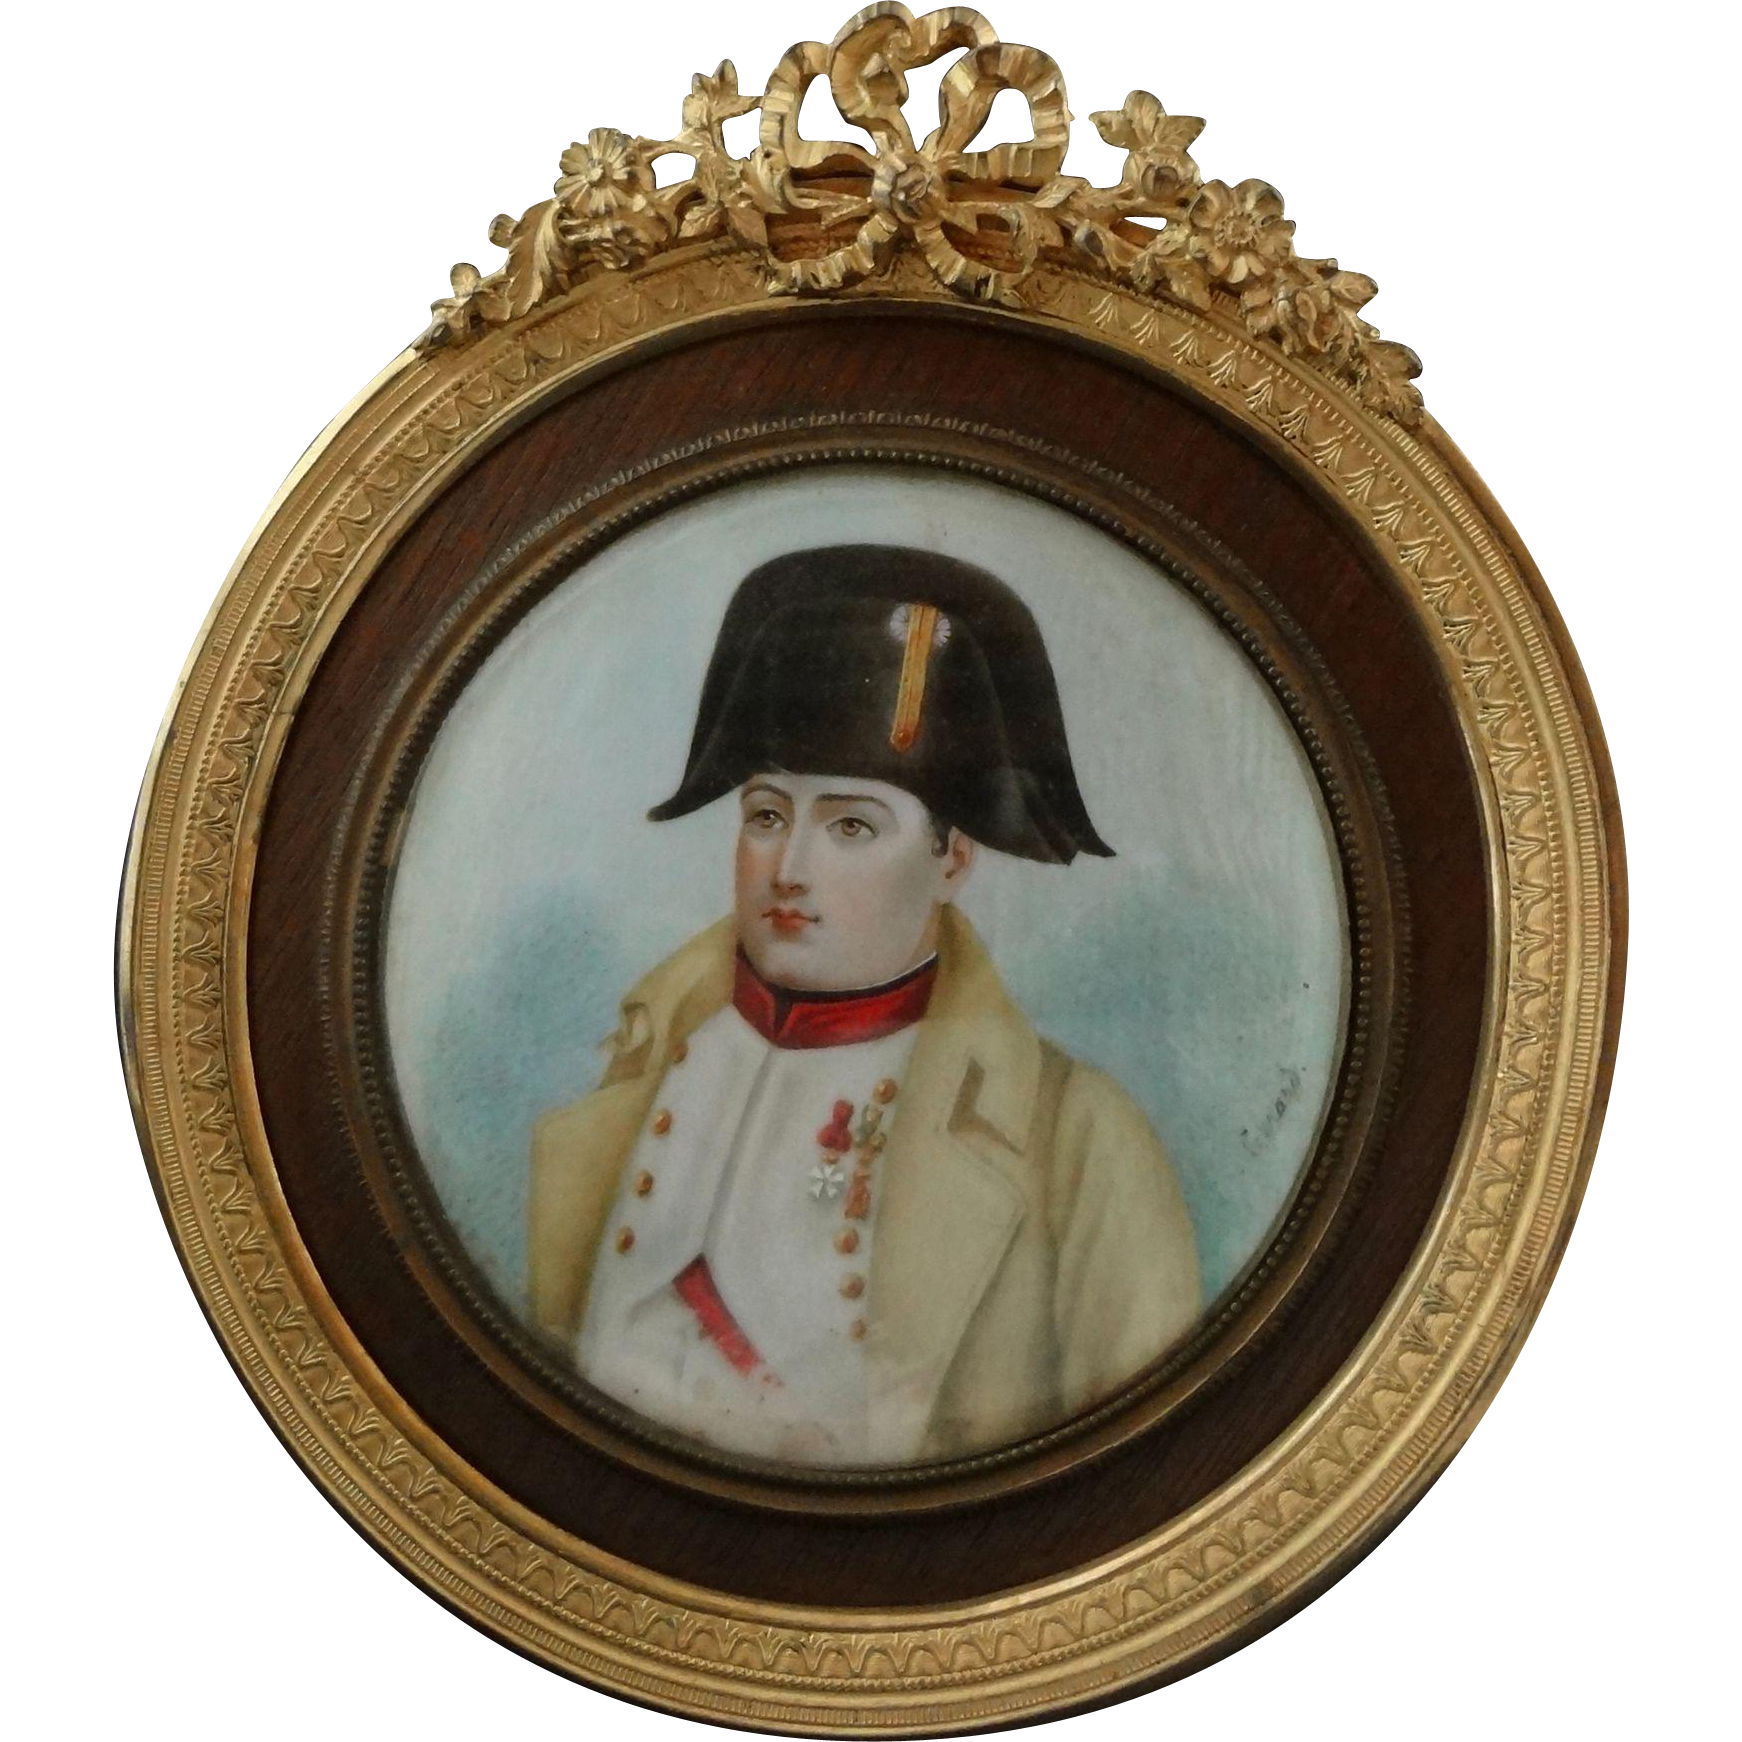 Napoleon Bonaparte Signed Miniature Portrait Painting Gilt Bronze Frame - 19th Century, France